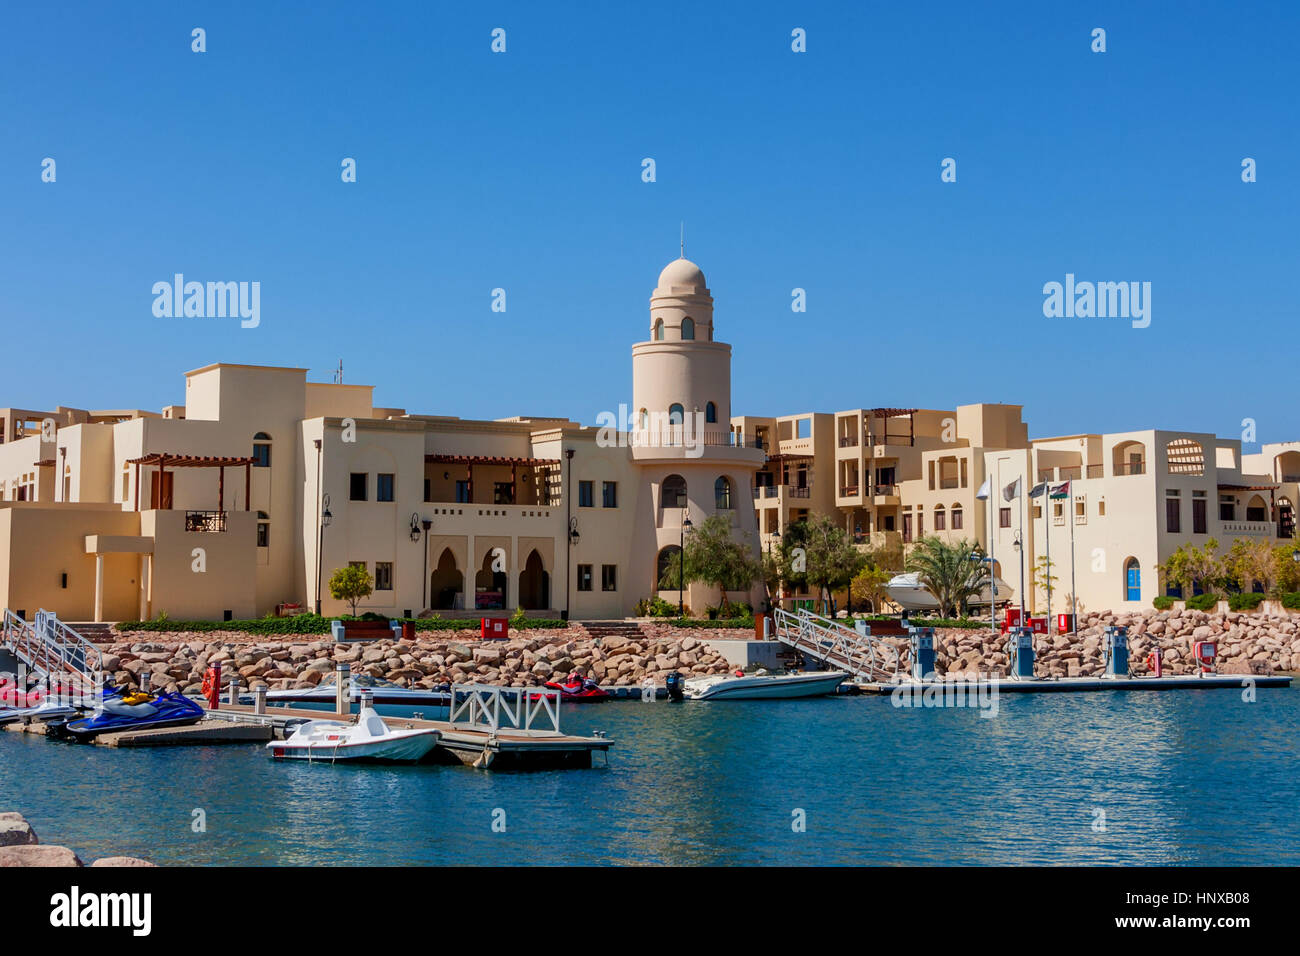 Boats in Tala Bay, Aqaba, Jordan - Stock Image